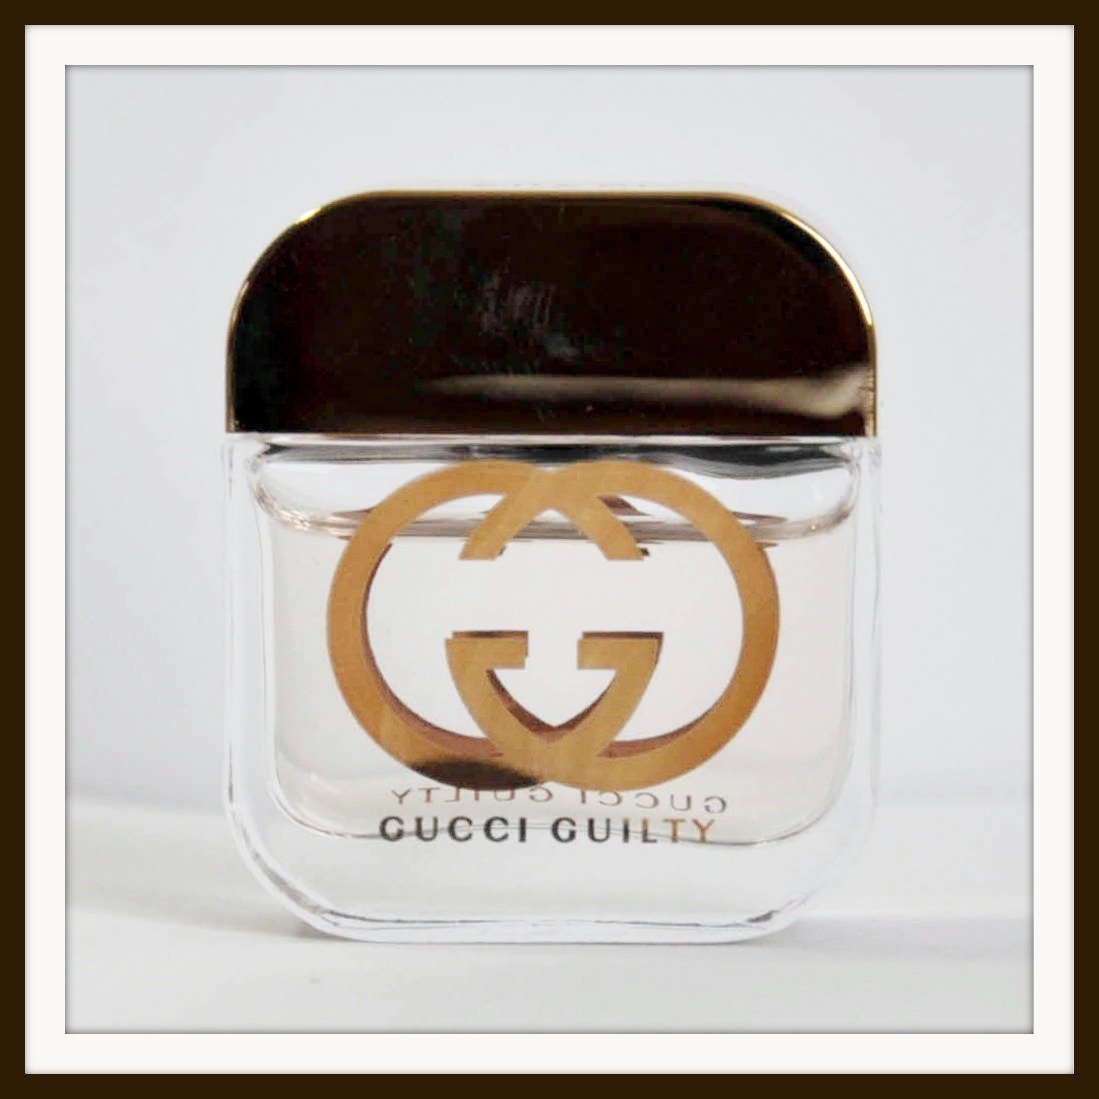 5a165a289 GUCCI GUILTY .16 oz / 5 ml Toilette Splash and 50 similar items